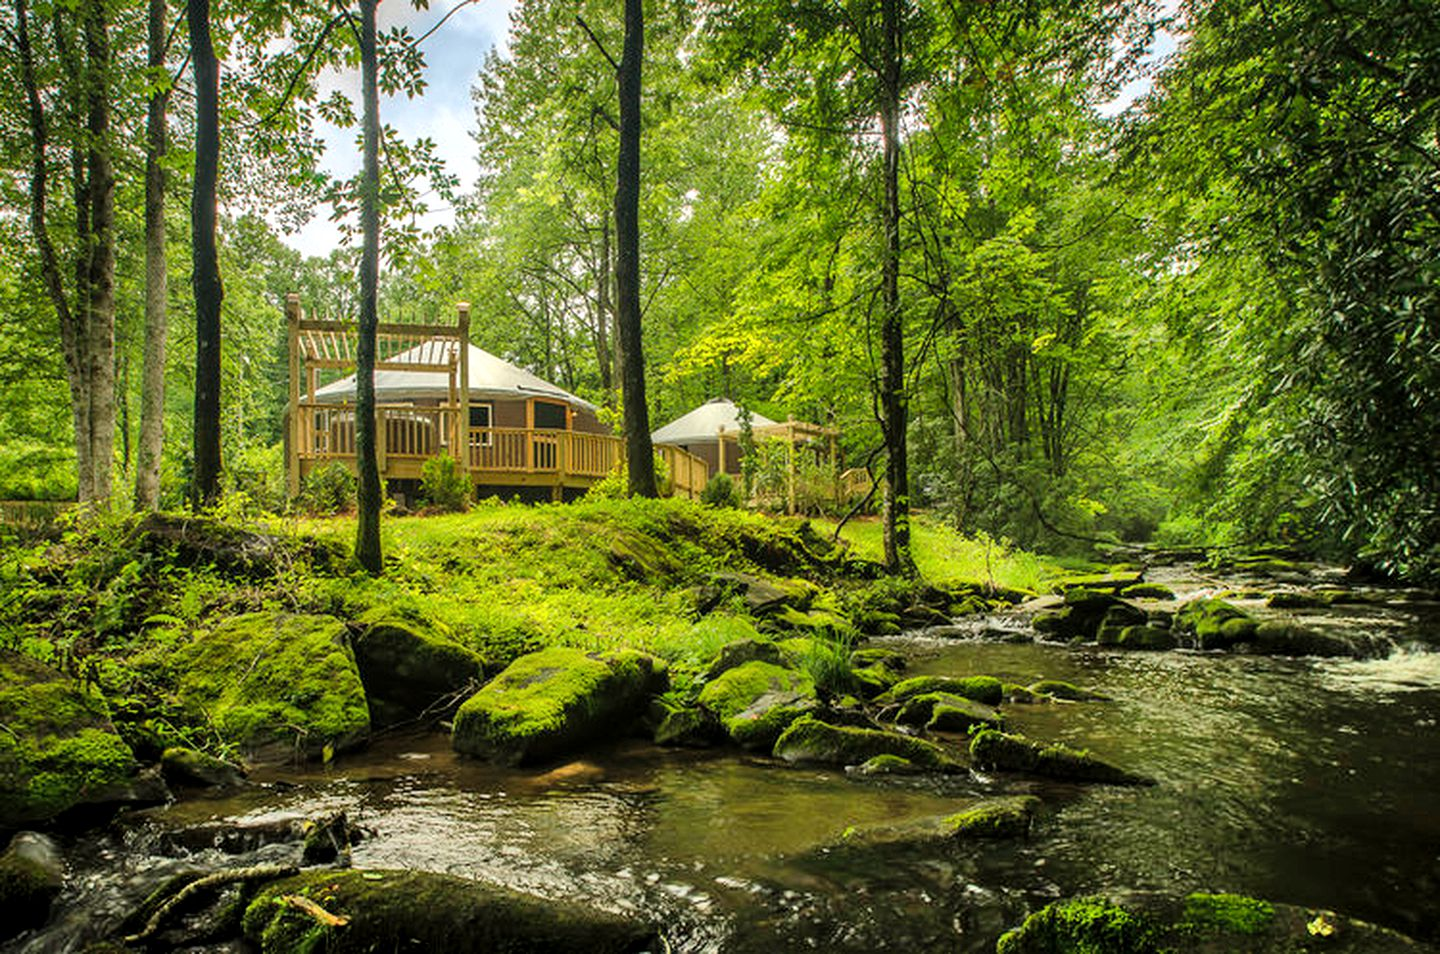 Natahala yurt rental: Glamping in yurts Natahala, NC mountains (Topton, North Carolina, United States)